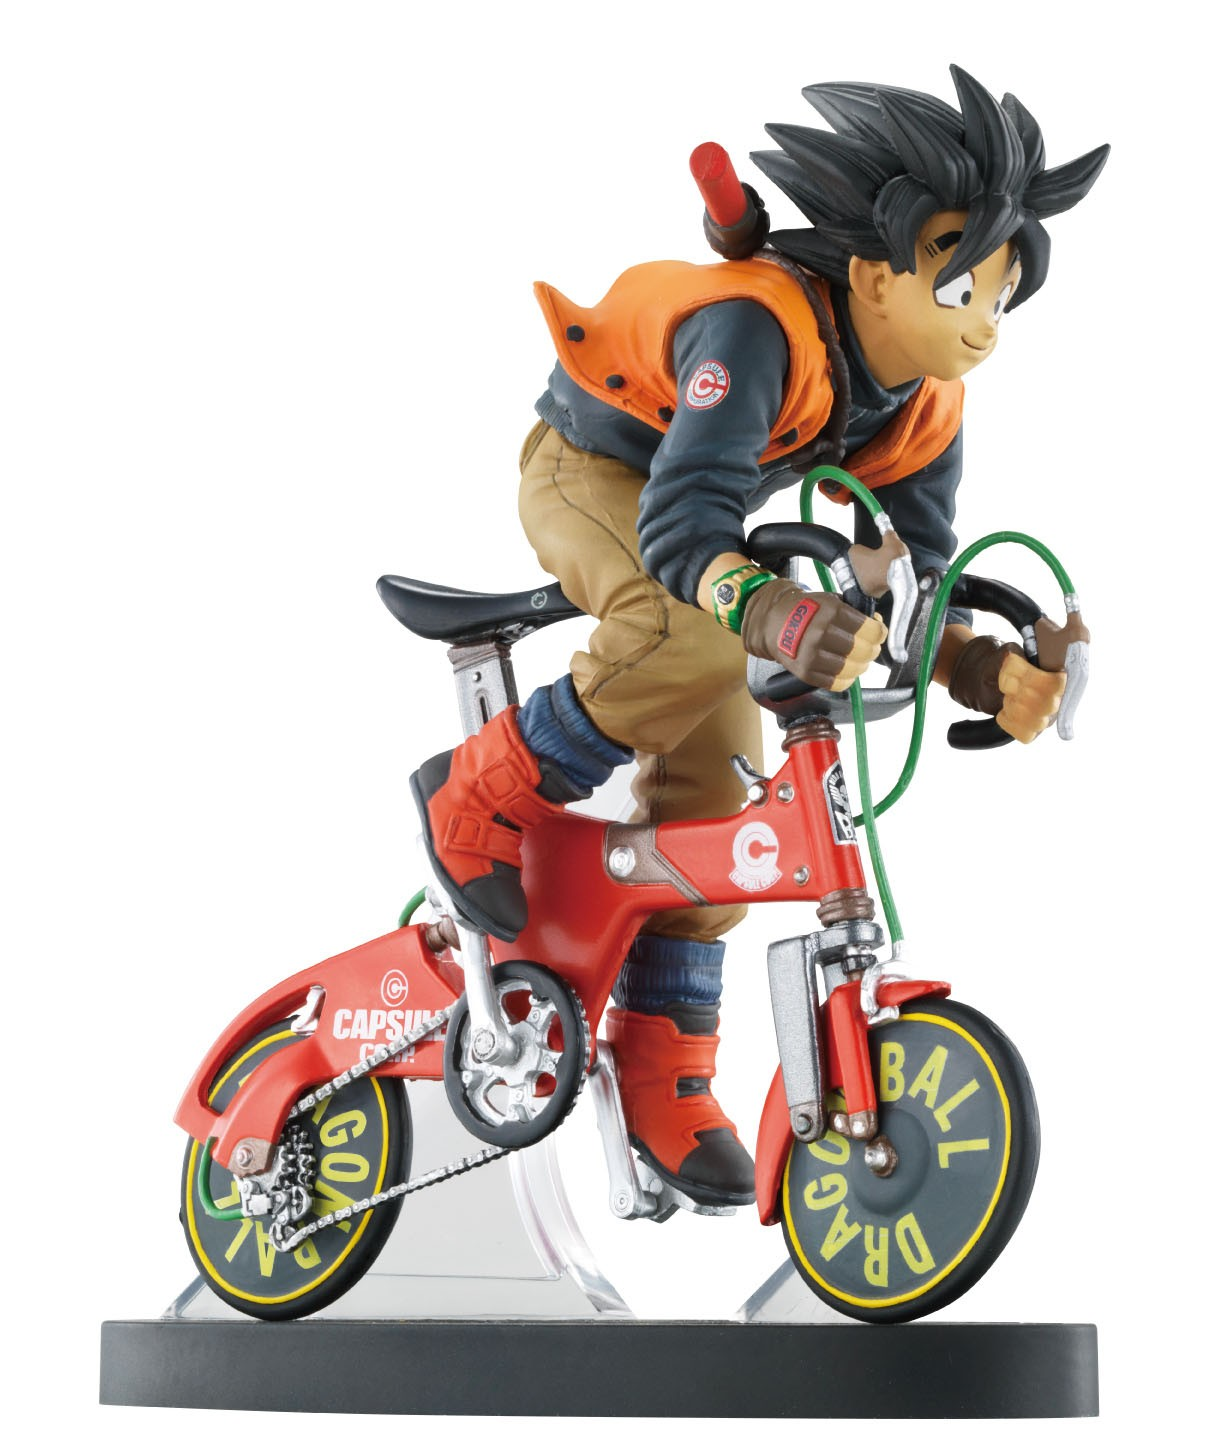 Dragon Ball Z - Desktop Real McCoy Vol. 1 - Son Goku Ver. 2.5 14 cm